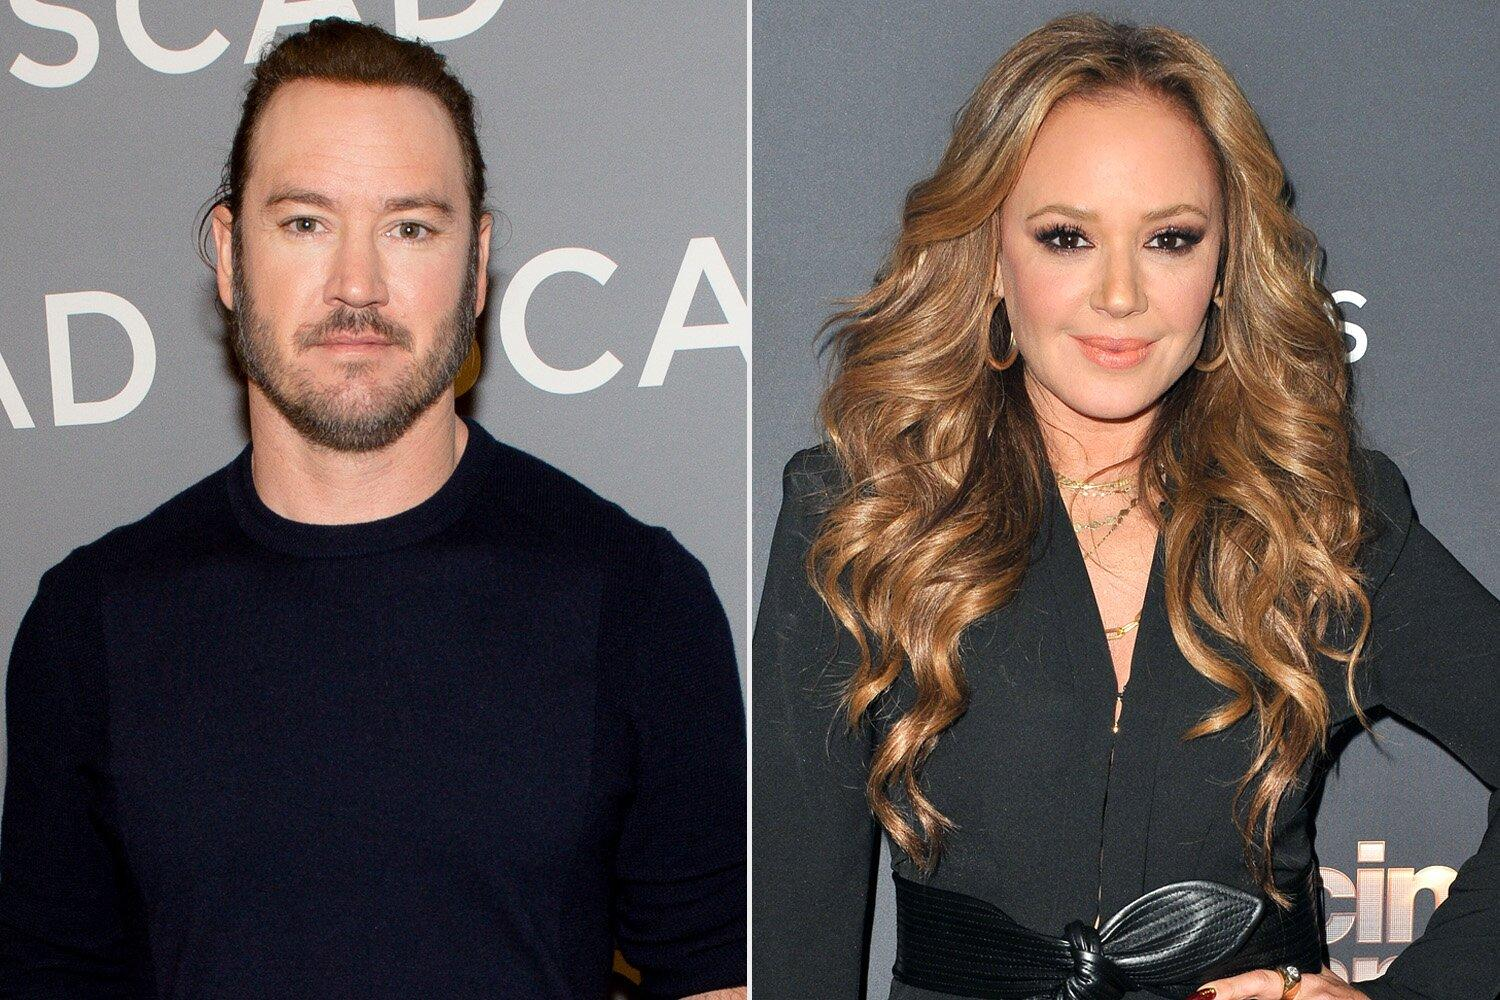 Saved by the Bell : Mark-Paul Gosselaar on 'Undeniable Chemistry' and 'Real Kisses' with Leah Remini